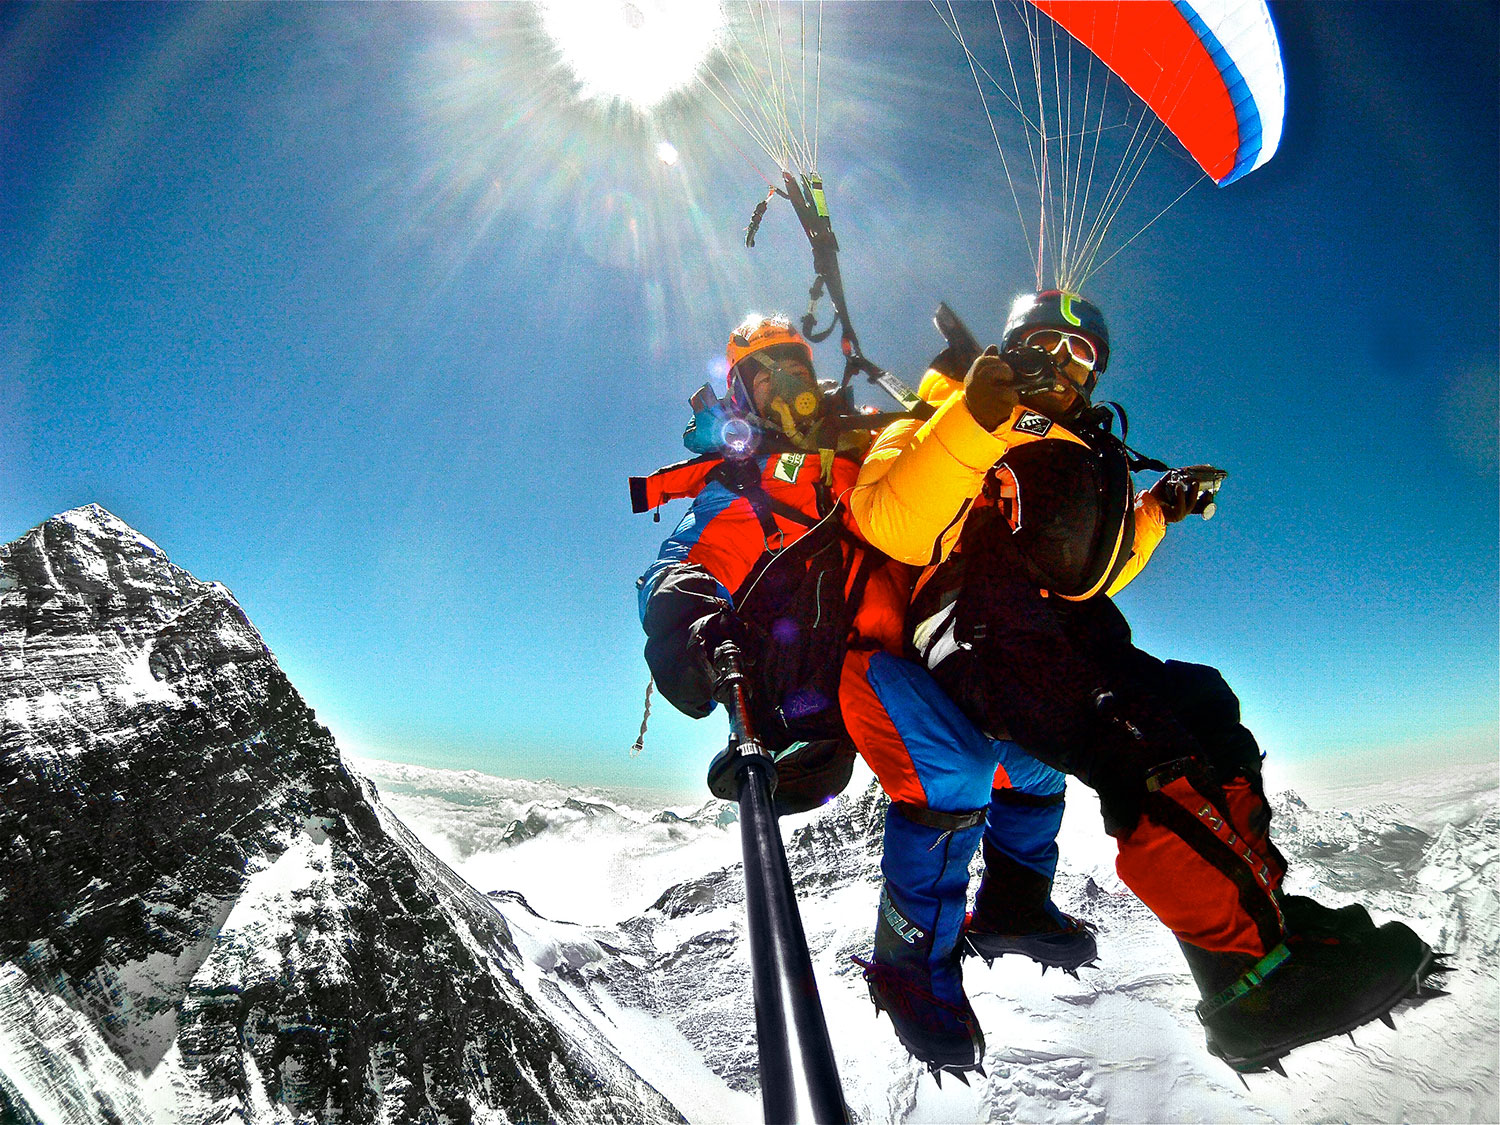 Taken with a GoPro, Sano Babu Sunuwar and Lakpa Tsheri Sherpa soar away from Mt. Everest, seen in the background. PHOTO: SANO BABU SUNUWAR